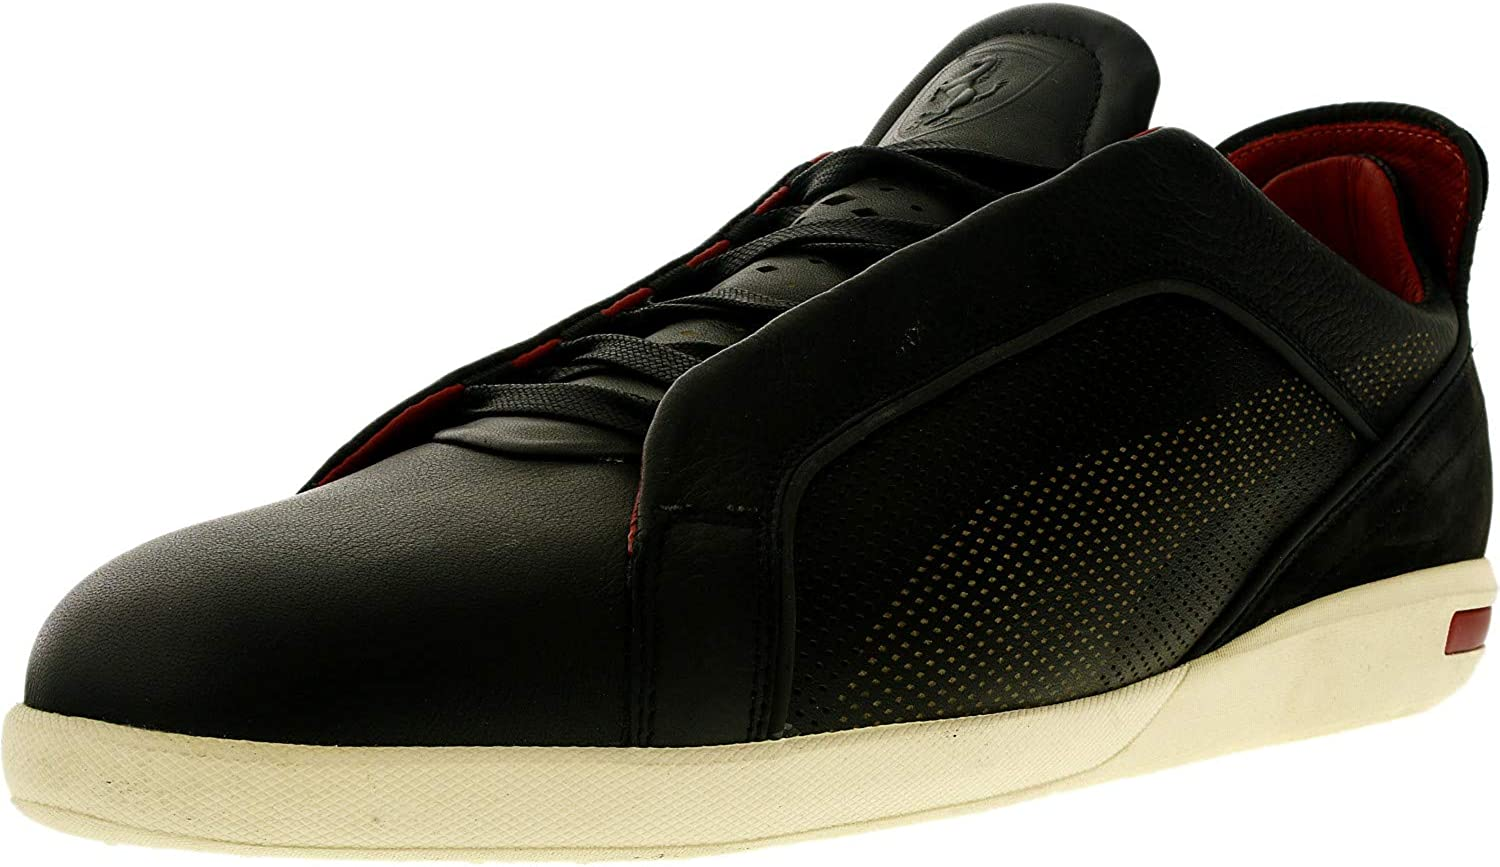 Ferrari Men's Ultimate Sf 10 Ankle-High Fashion Sneaker